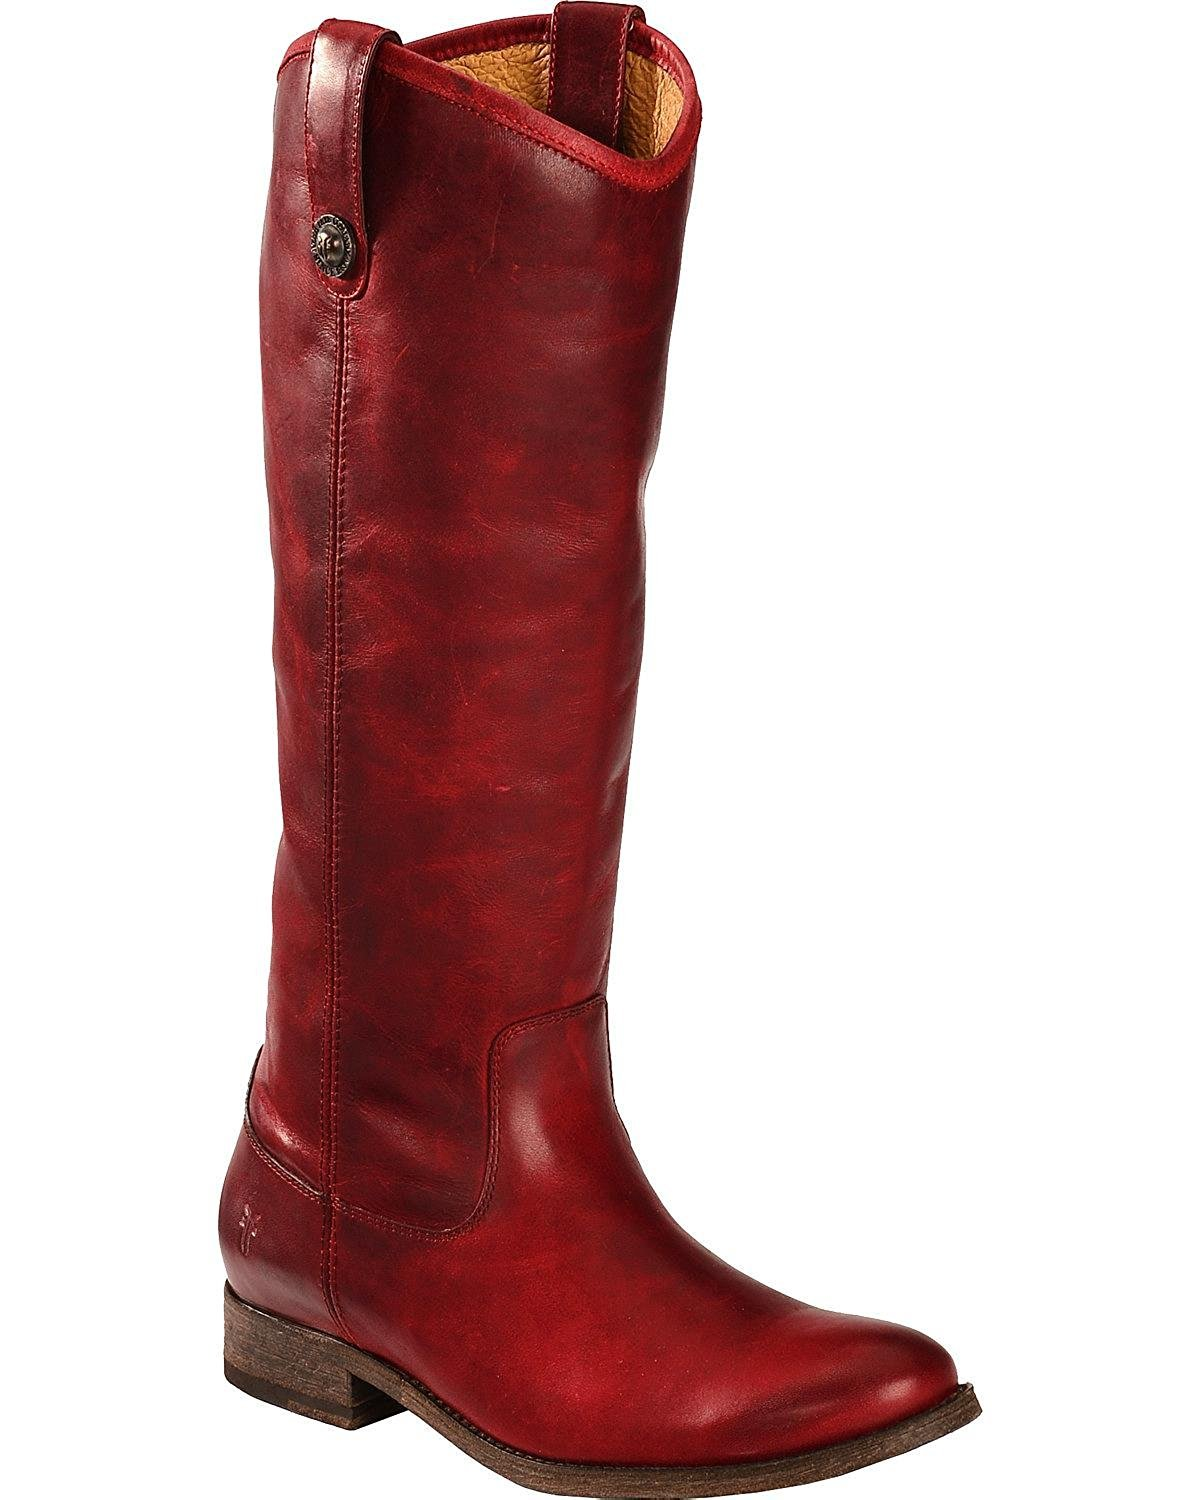 FRYE Women's Melissa Button Boot B00IMIDMSY 6 B(M) US|Burgundy Washed Antique Pull Up